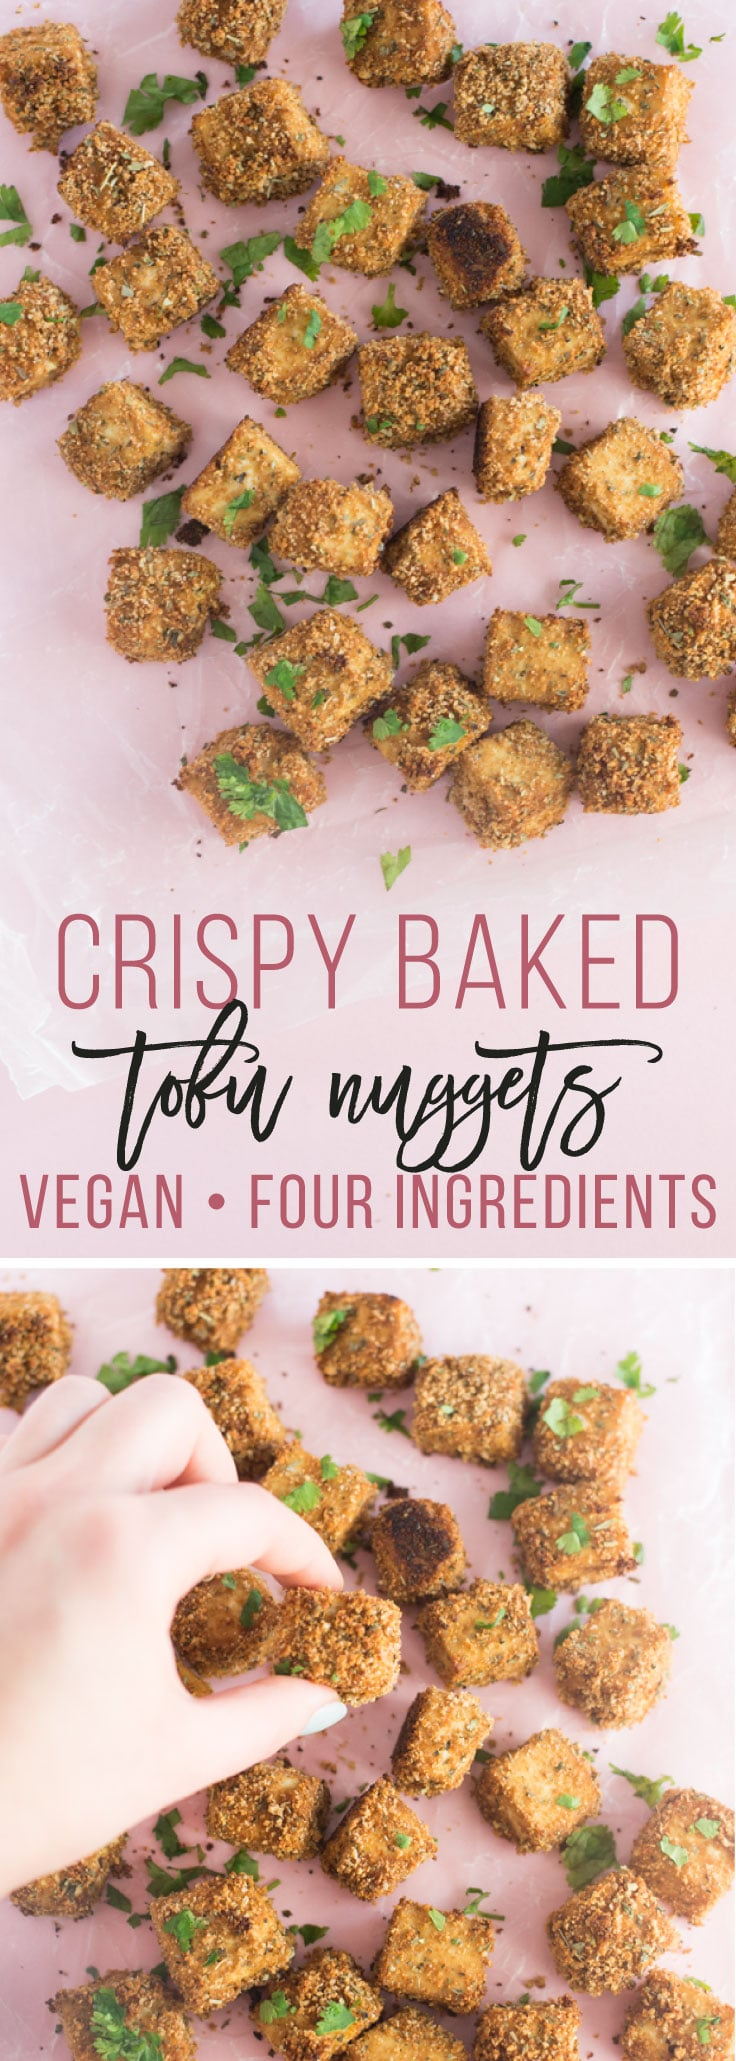 Baked Tofu Nuggets -- These breaded tofu nuggets are so easy to make and baked to perfection! Great for grain bowls, salads, on their own for a healthy meal. You're just FOUR ingredients away from making this delicious vegan recipe! #vegan #vegetarian #plantbased #healthy #cleaneating #tofu | mindfulavocado